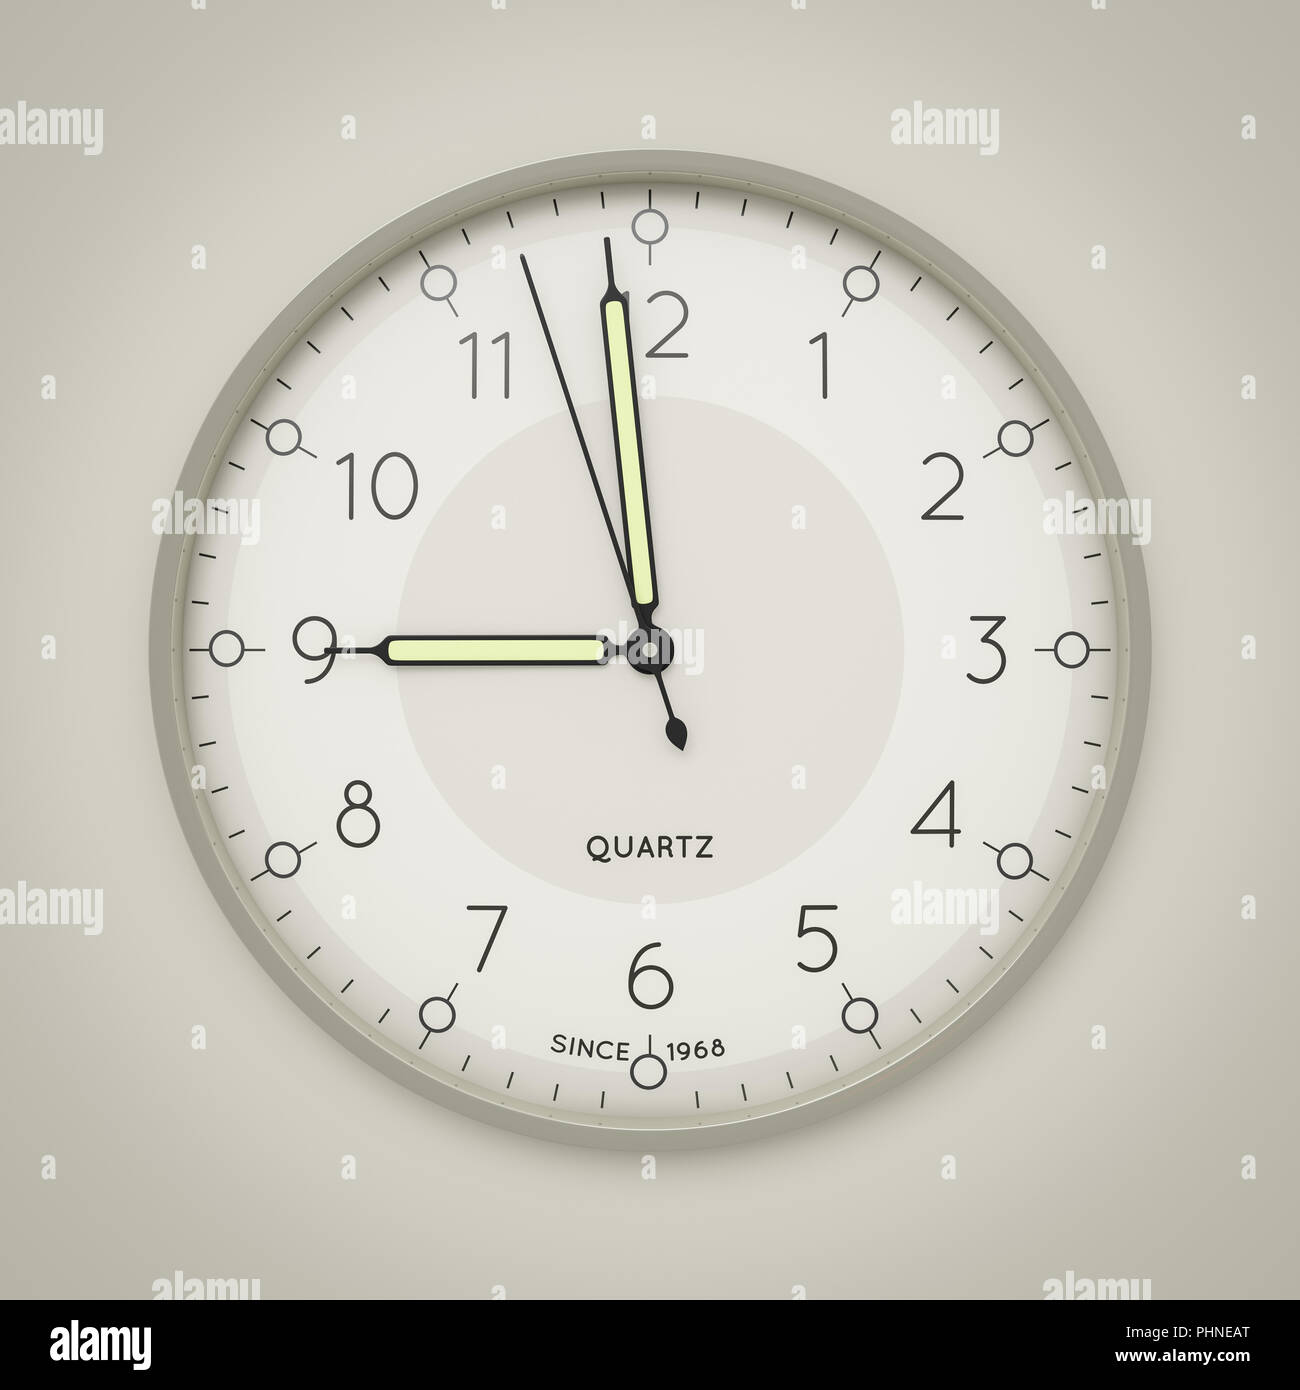 a clock showing three seconds to nine - Stock Image